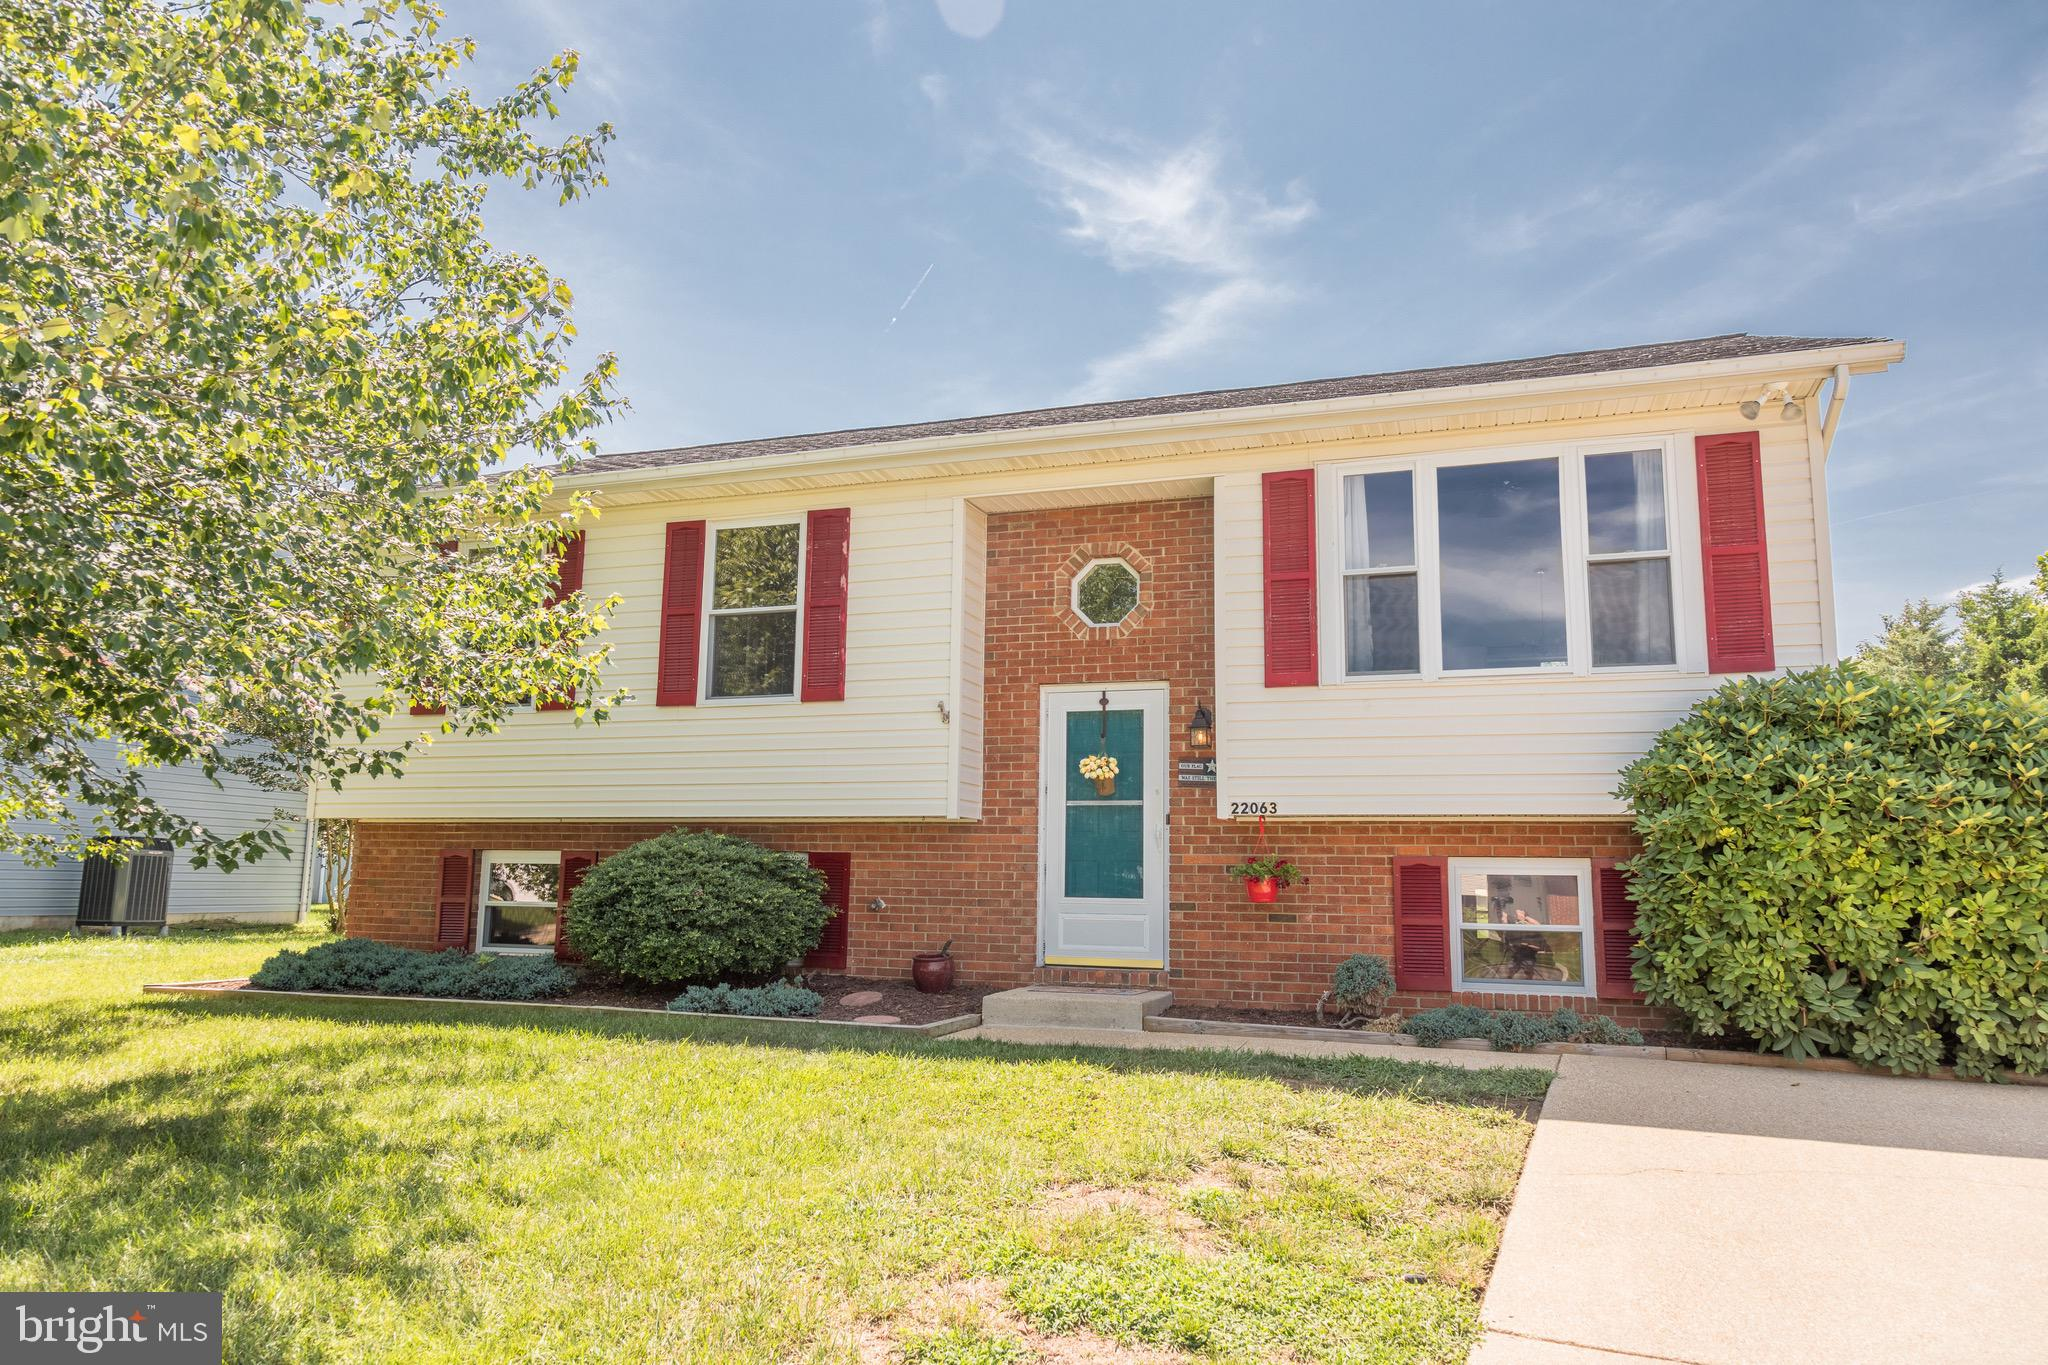 22063 CARAVEL COURT, GREAT MILLS, MD 20634